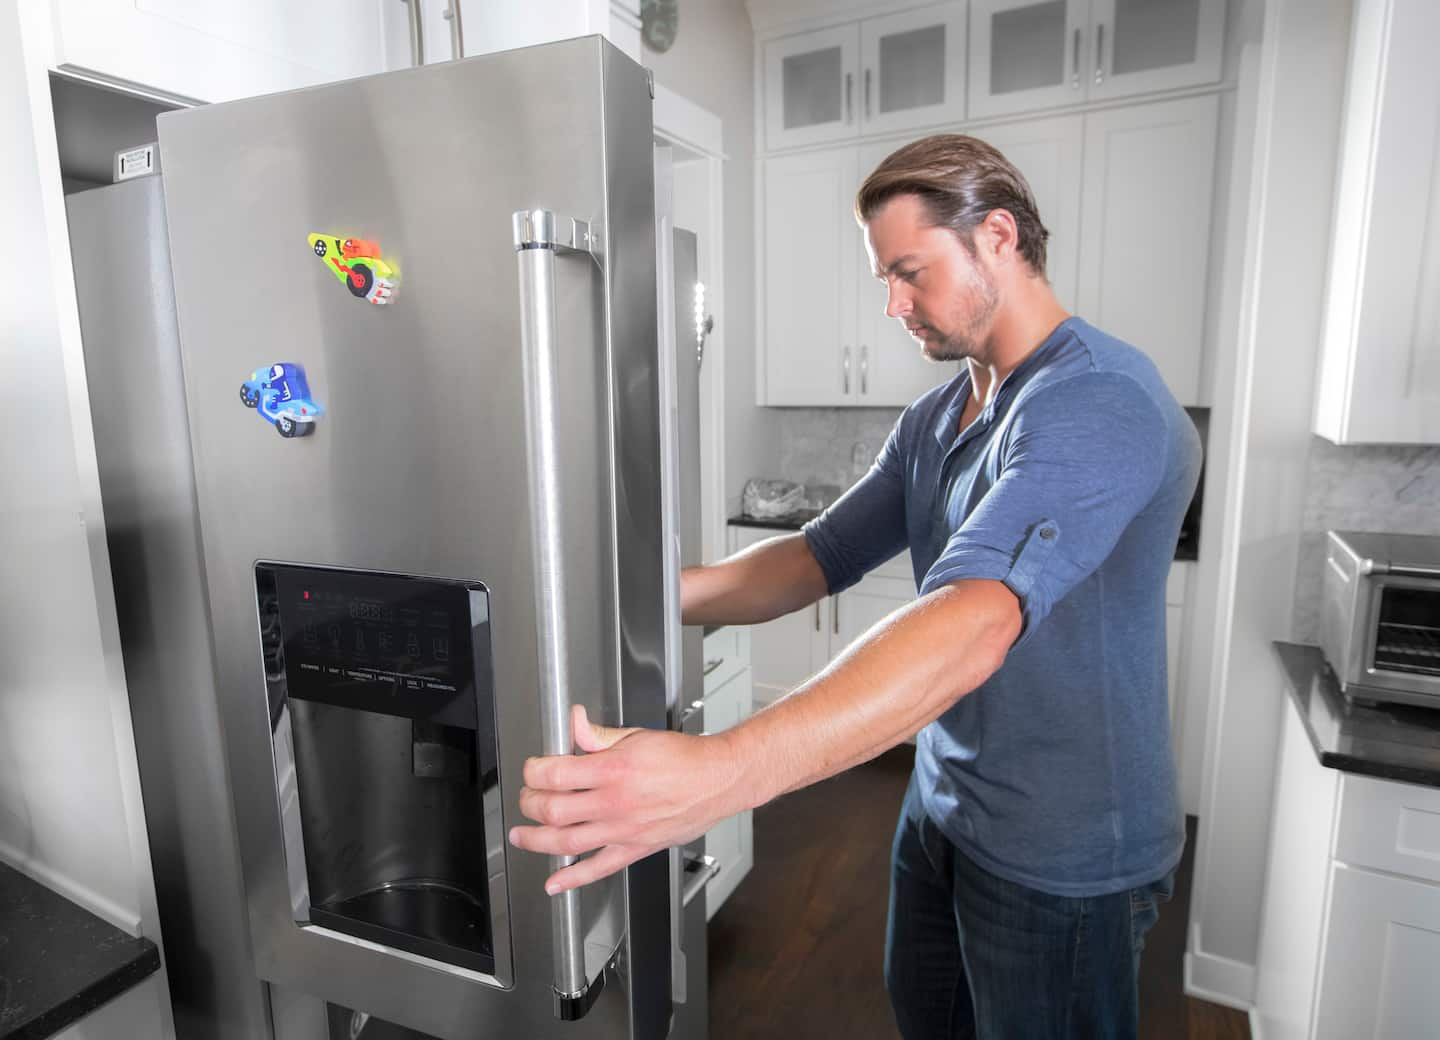 How Much Does Refrigerator Repair Cost? | Angie's List